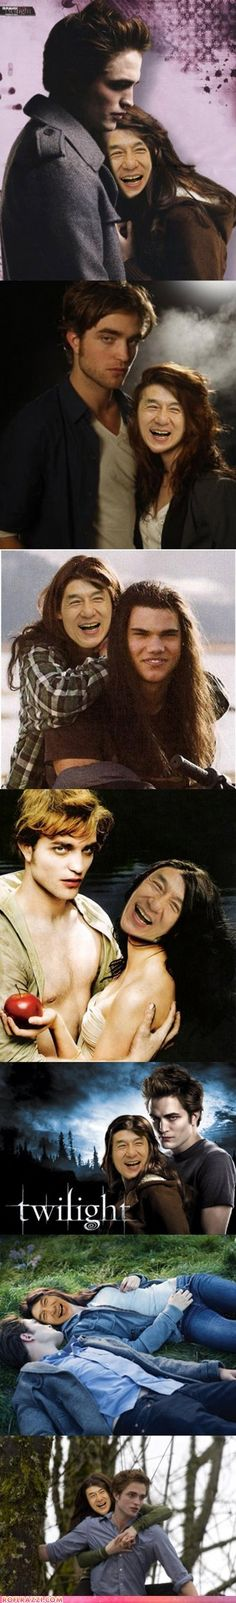 Twilight starring Jackie Chan, much better